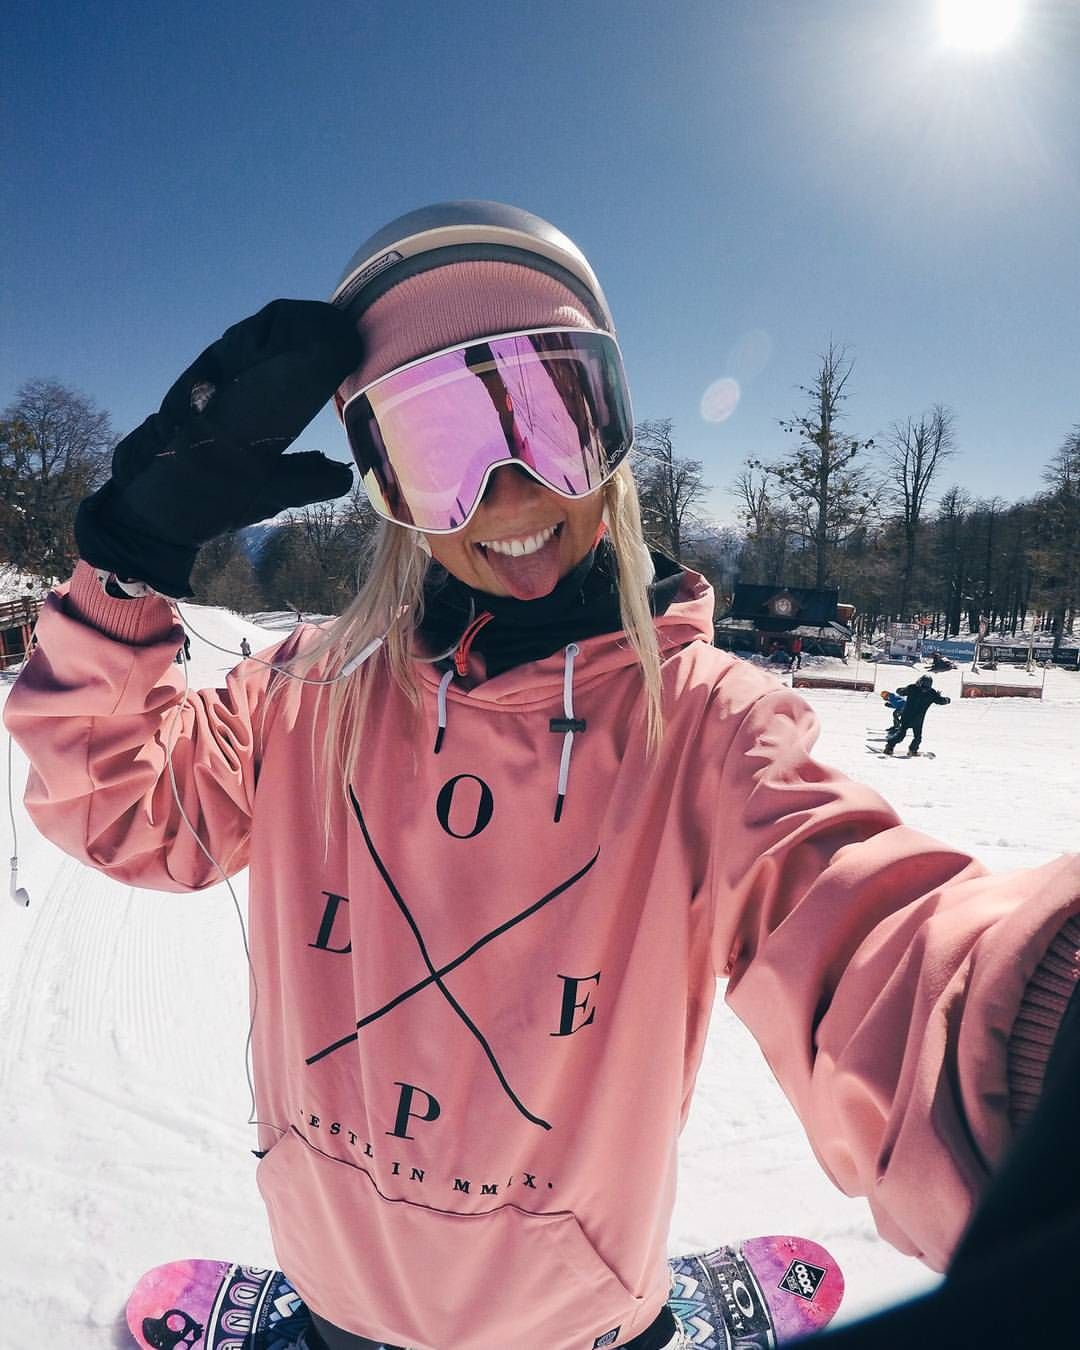 B a g n e s | Winter jackets, Ski wear, Winter